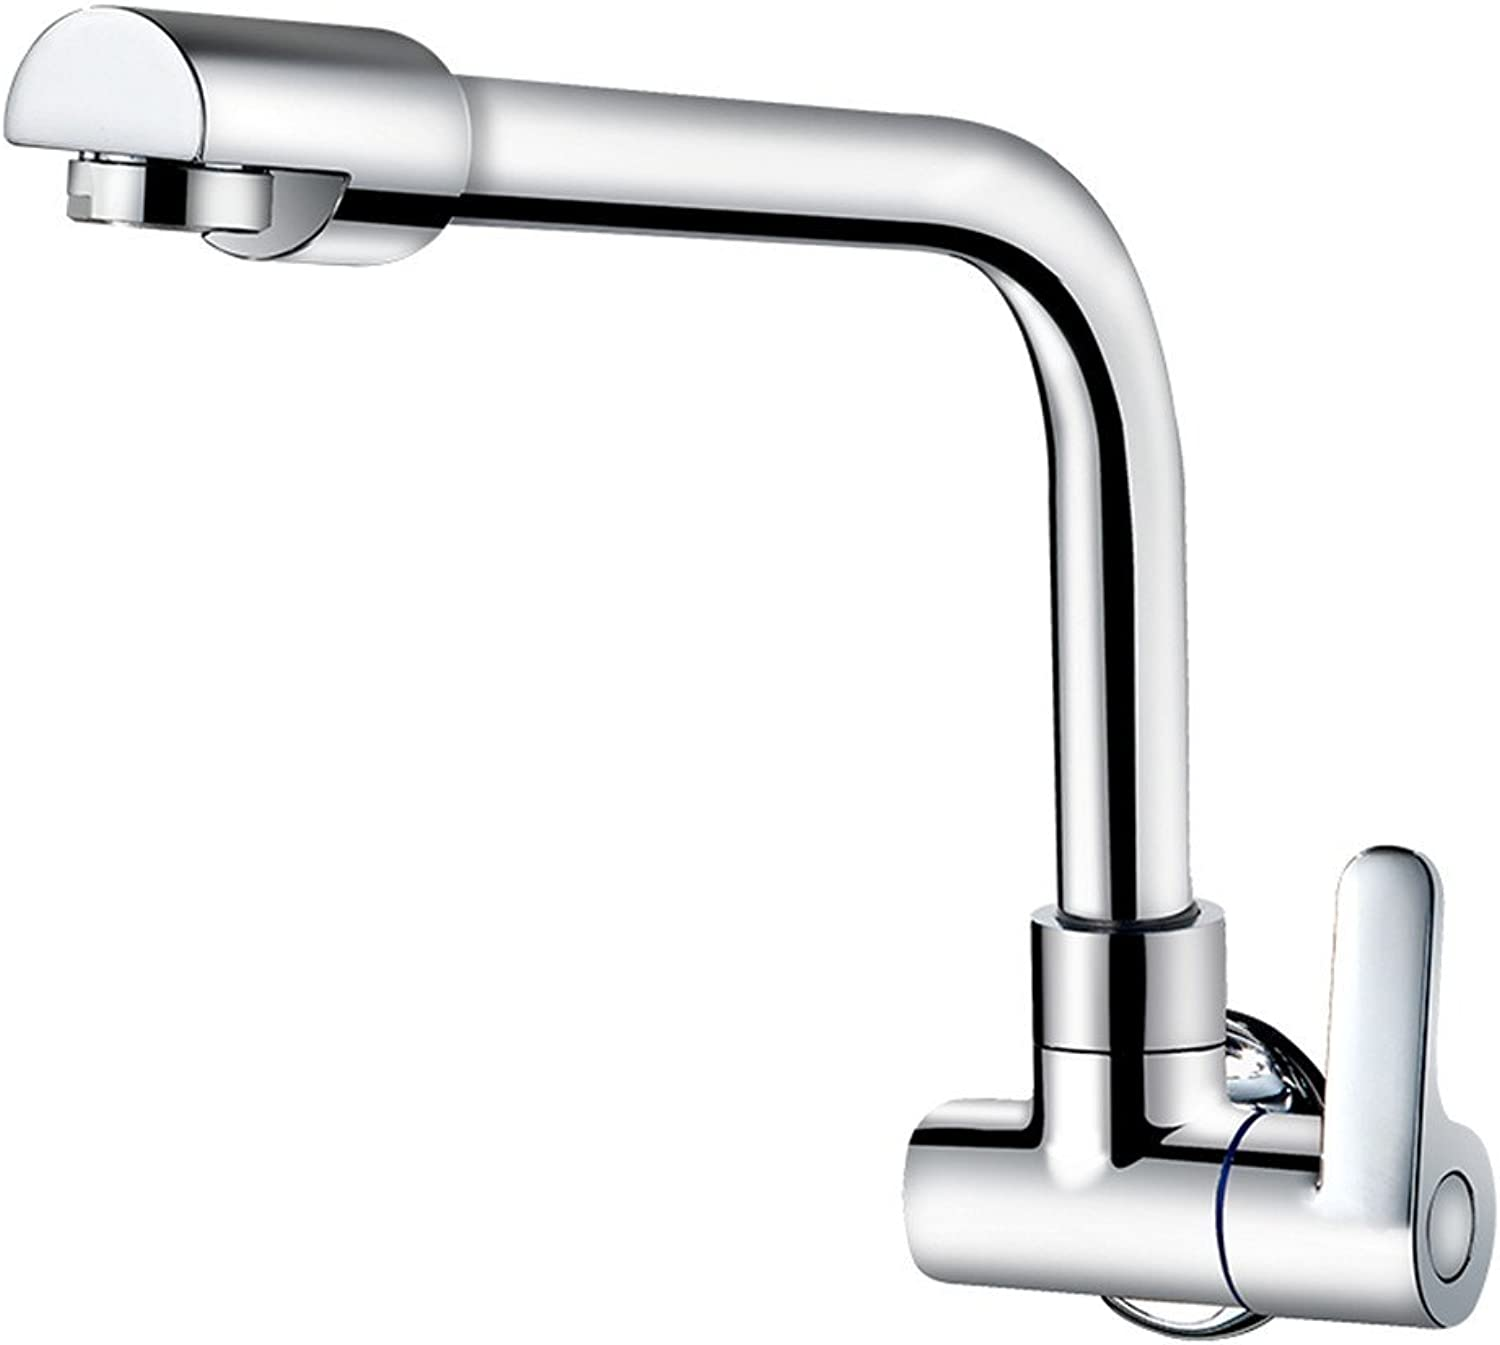 SADF Faucet Full Copper Body 360 Degree redating Into The Wall Single Cold Kitchen Faucet